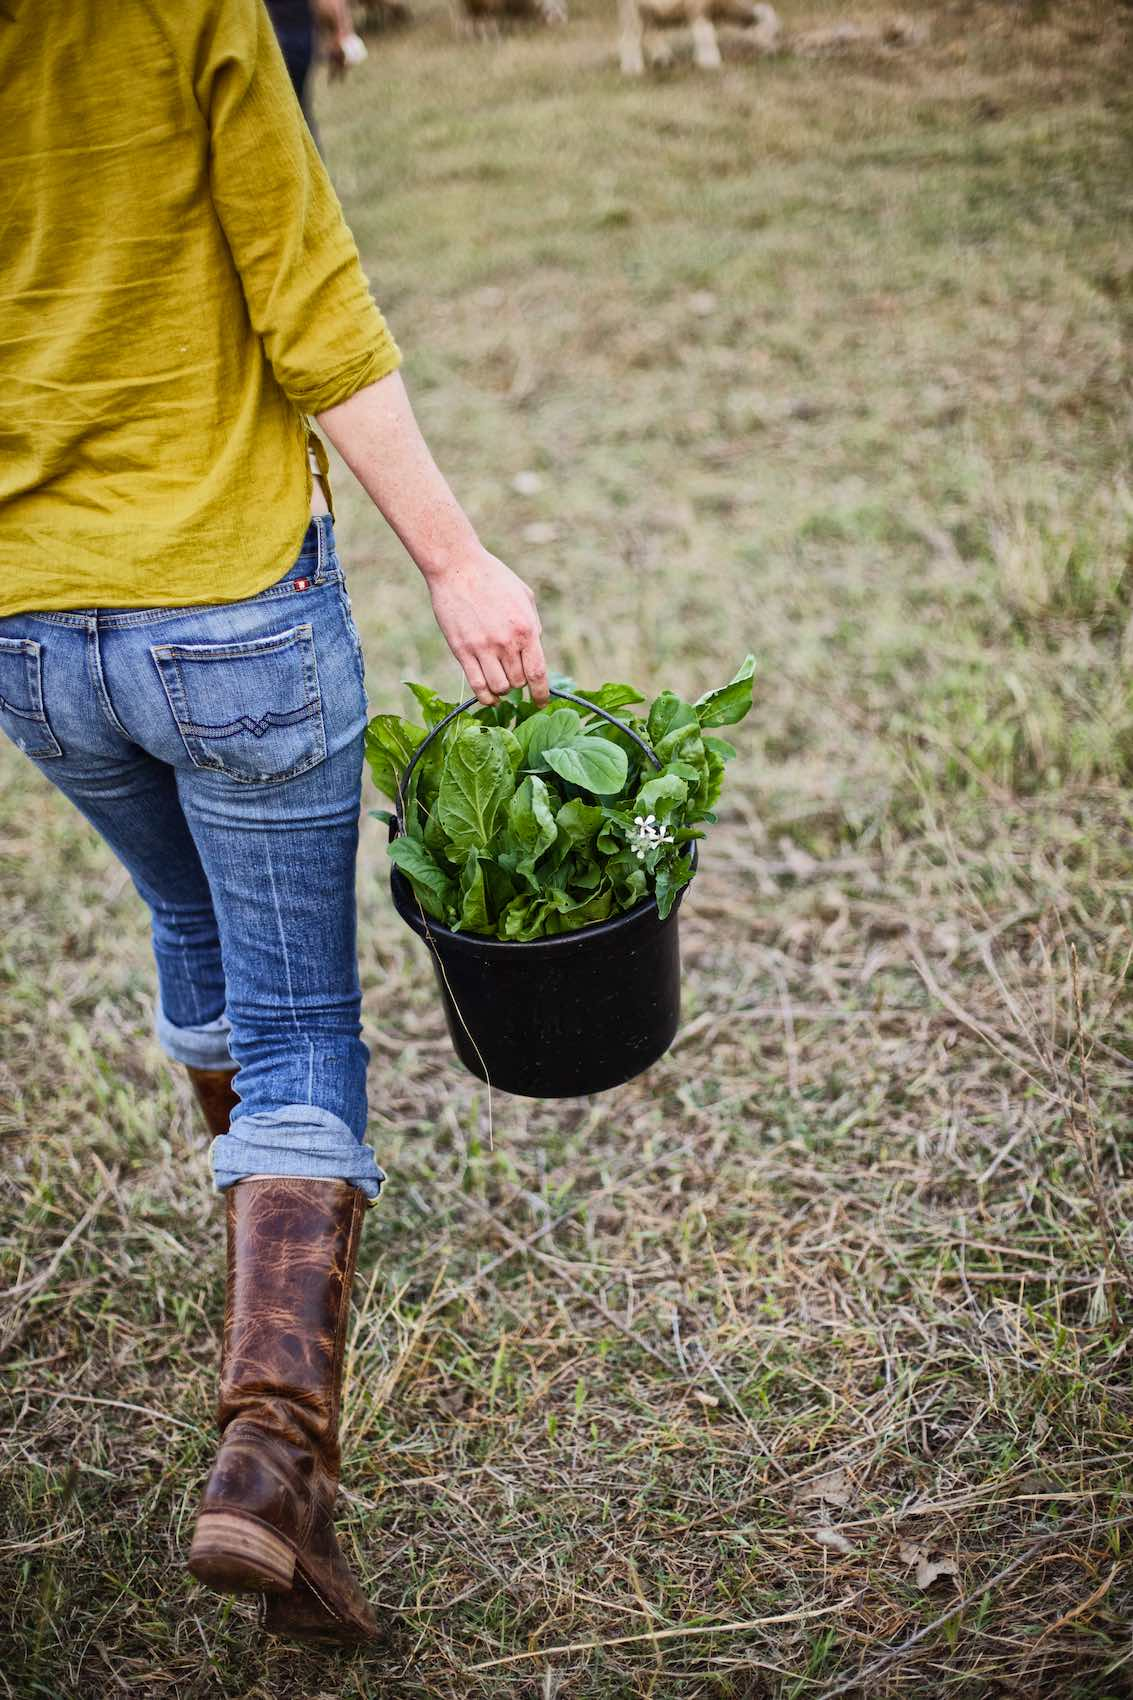 Jody Horton Photography - Farmer carrying fresh greens in a black bucket.